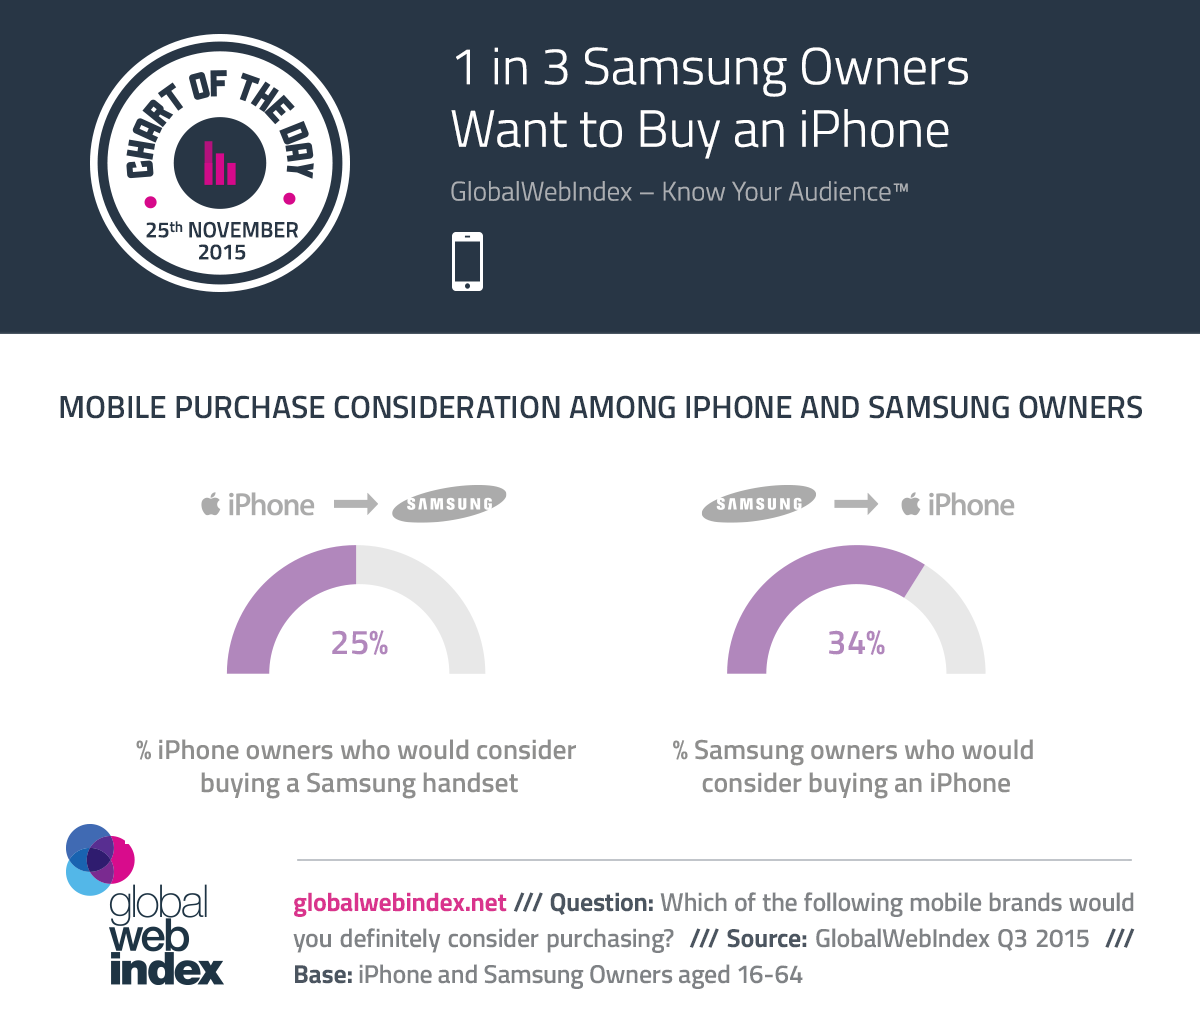 COTD-Charts-25-Nov-2015-1-in-3-Samsung-Owners-Want-to-Buy-an-iPhone.png